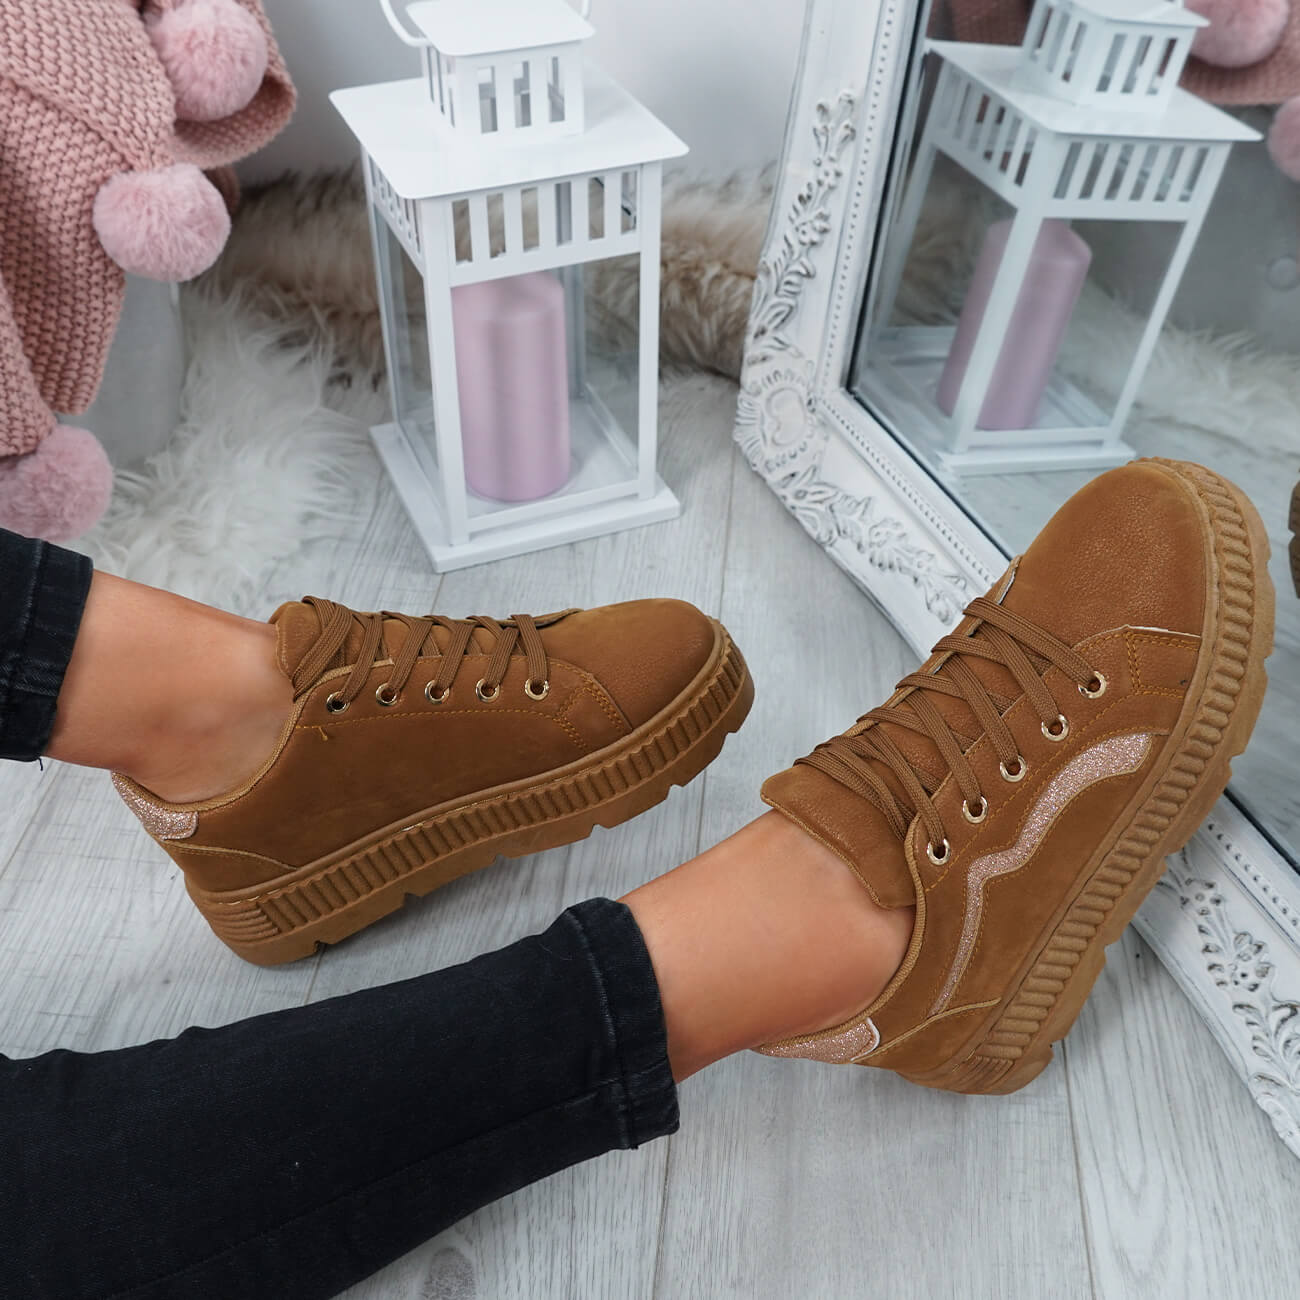 WOMENS-LADIES-LACE-UP-PLATFORM-TRAINERS-PLIMSOLL-SKATE-SNEAKERS-SHOES-SIZE thumbnail 14